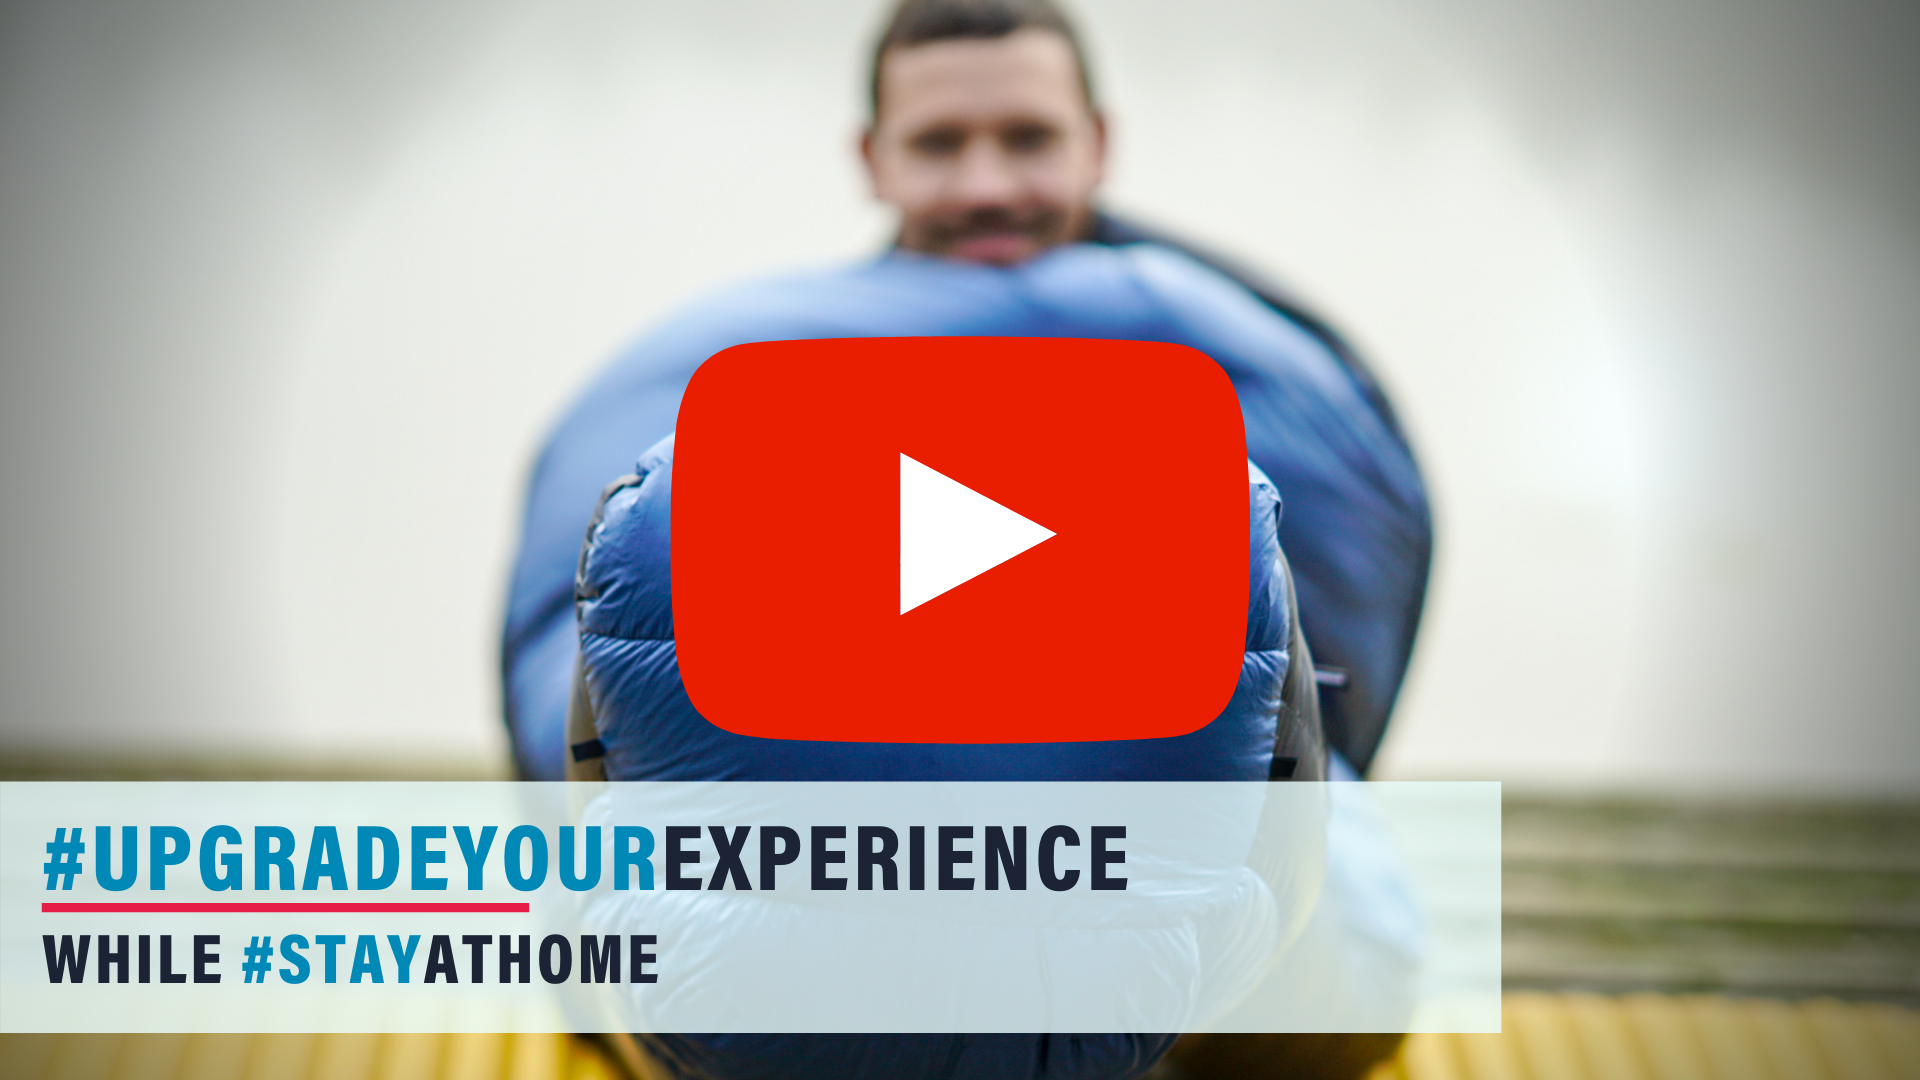 Upgrade your experience video